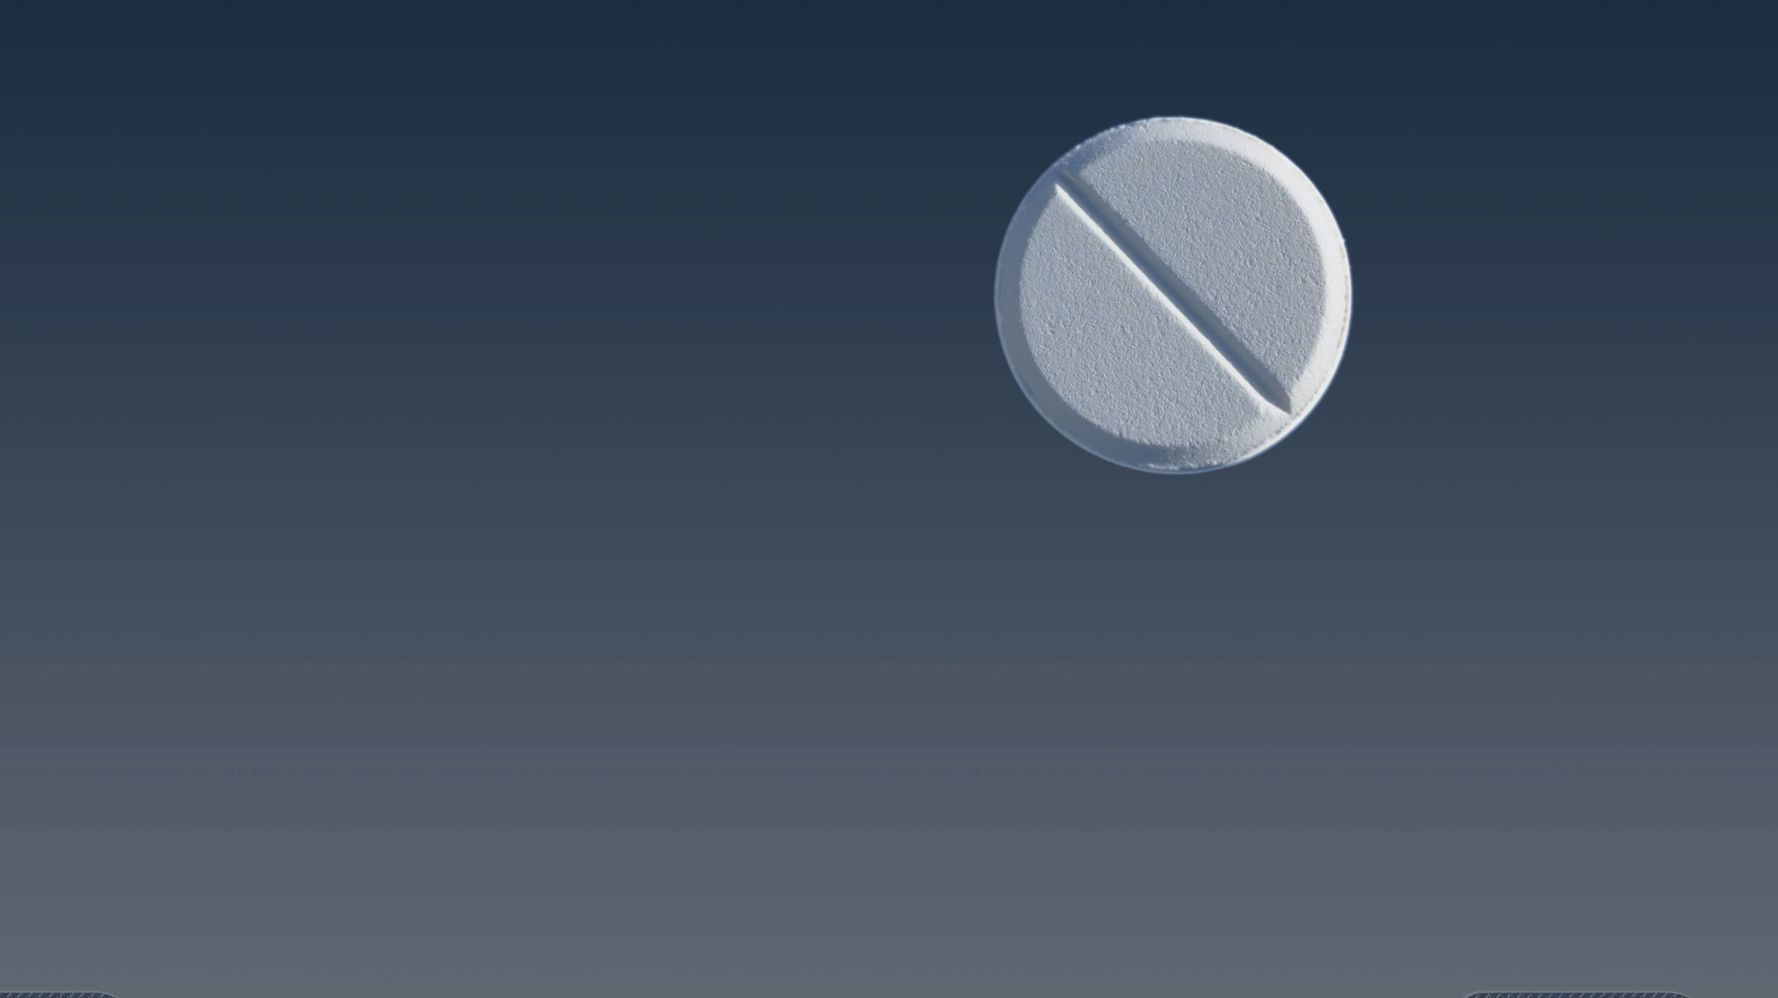 What You Should Know Before Trying New Sleeping Pill Belsomra | HuffPost